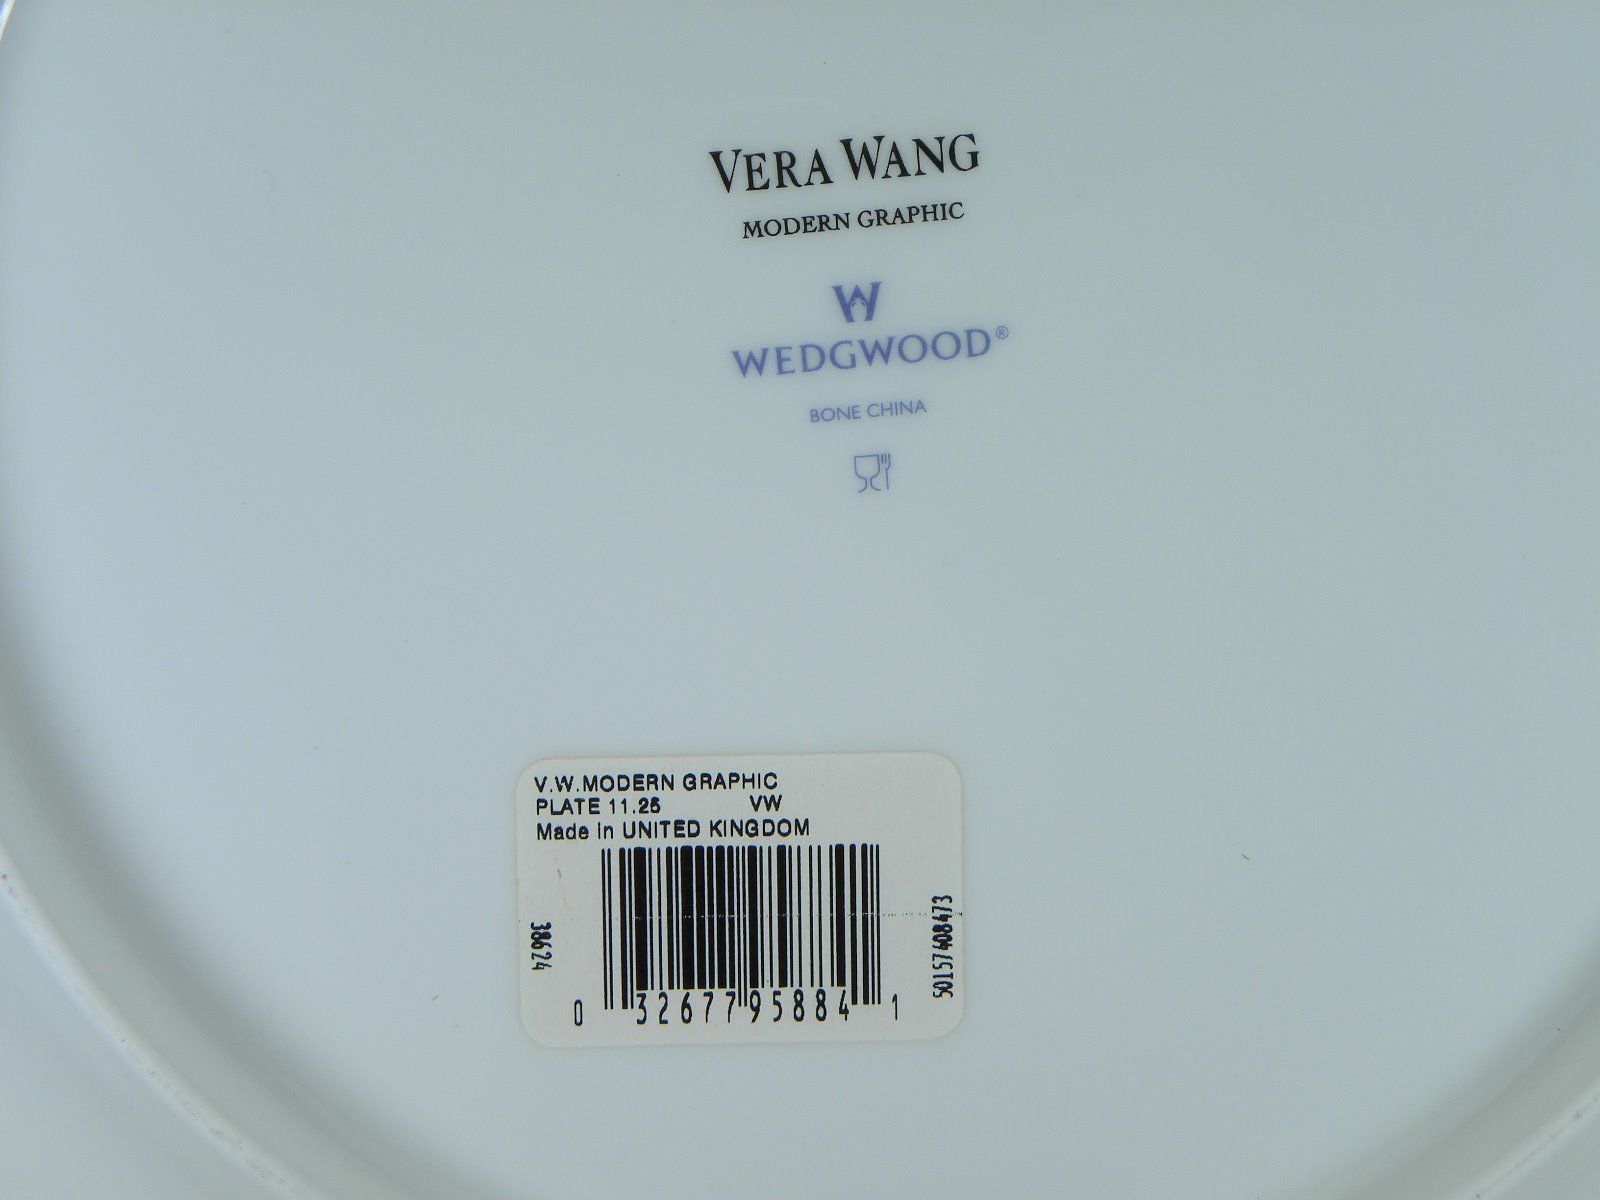 Vera Wang By Wedgwood Modern Graphic Dinner Plate NEW WITH TAGS Made in UK image 2